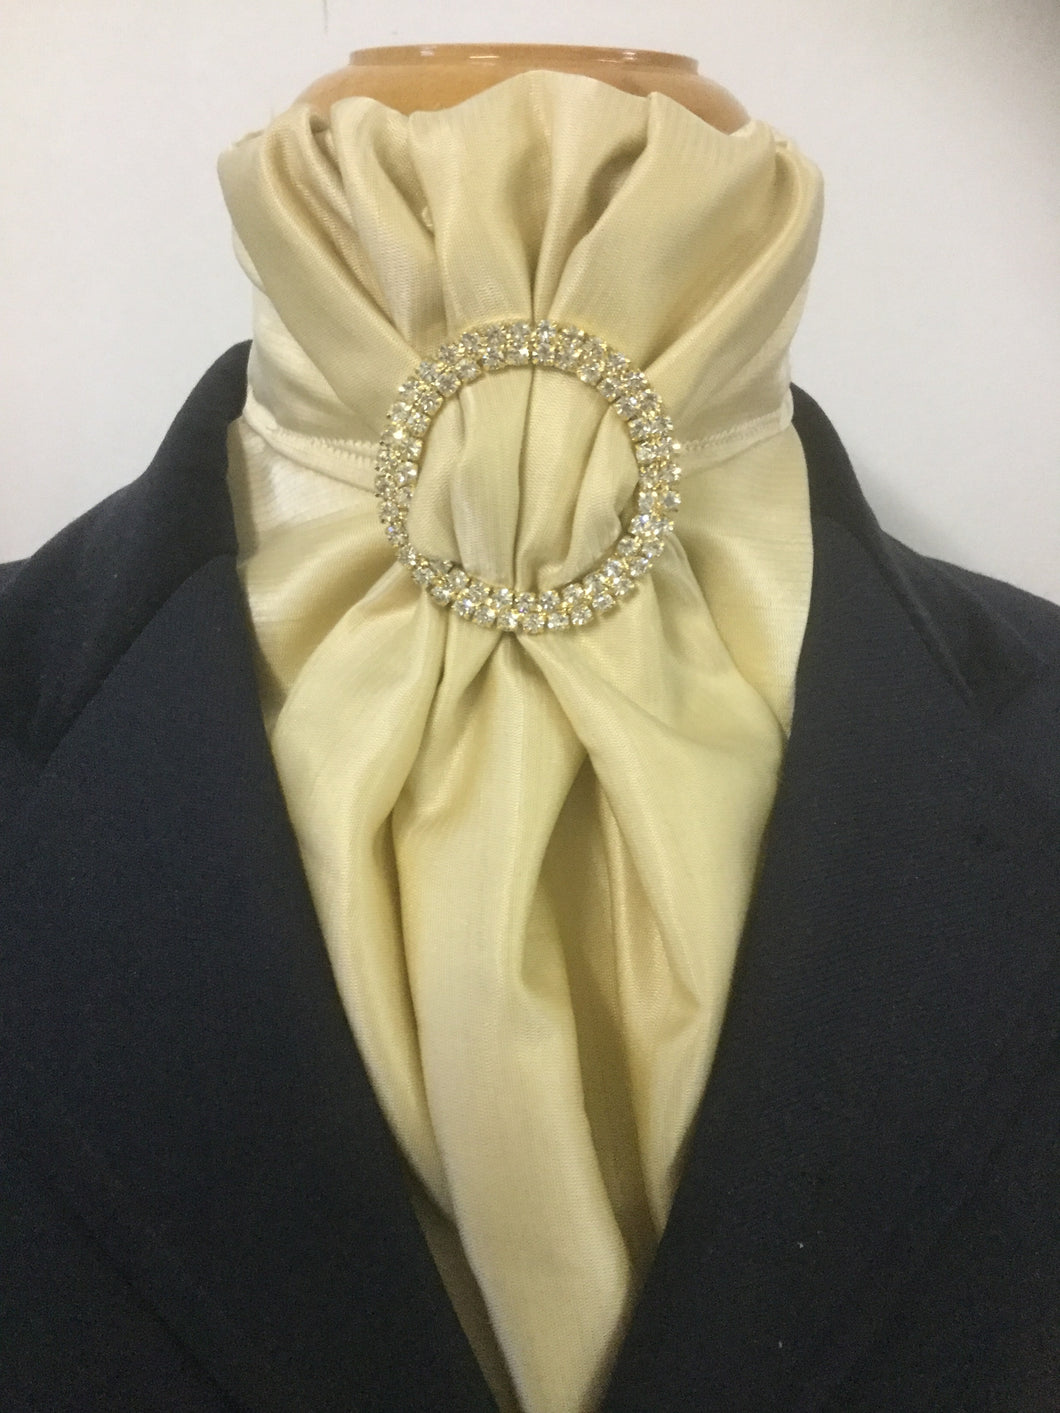 HHD 'The Lucy' in Gold Silk Pretied Euro Stock with a Gold Rhinestone Slider